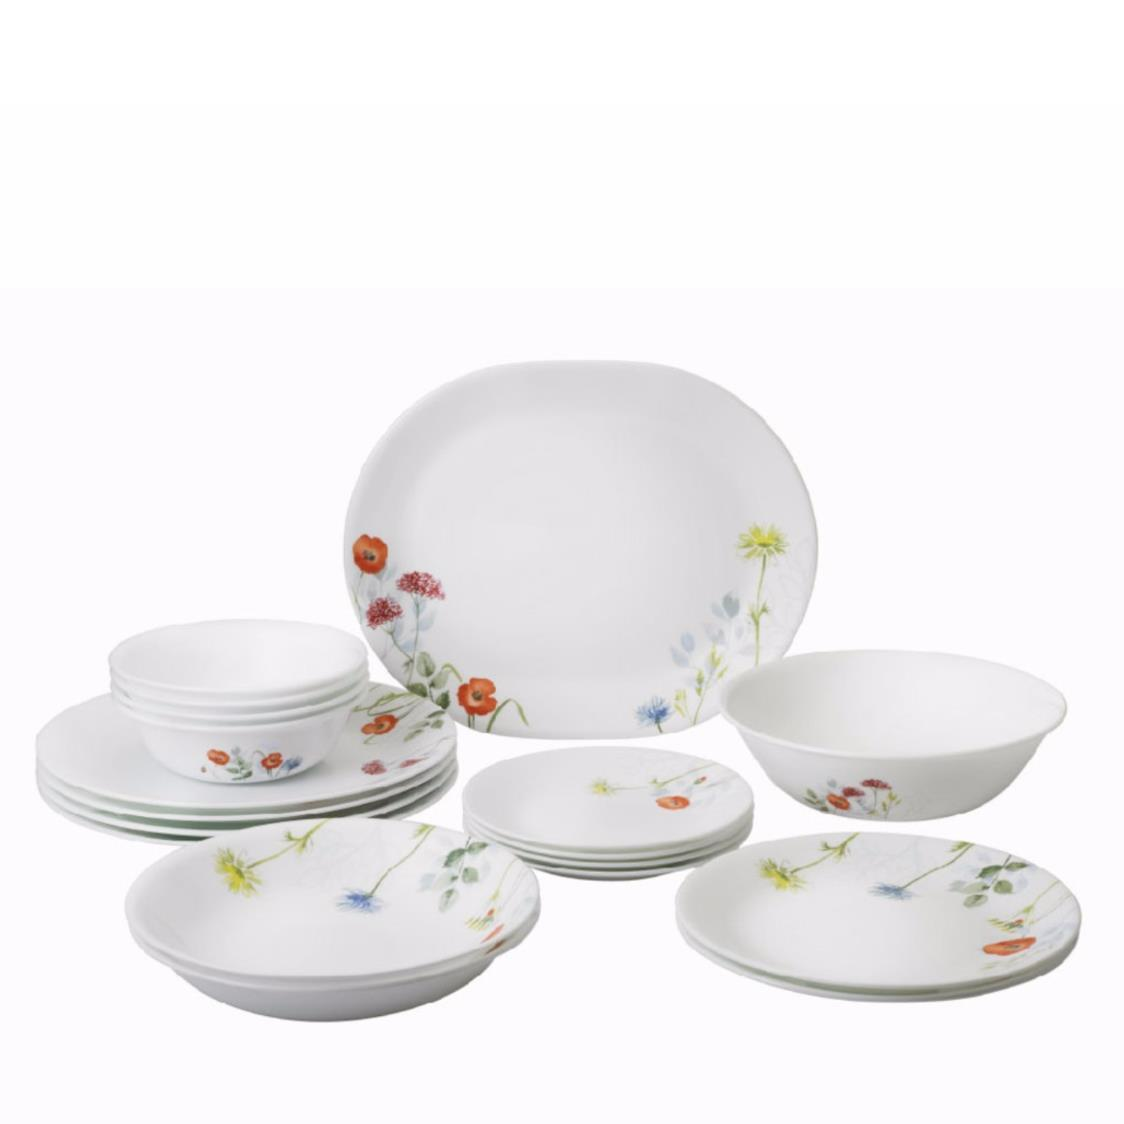 18pc Dinner Set Daisy Field